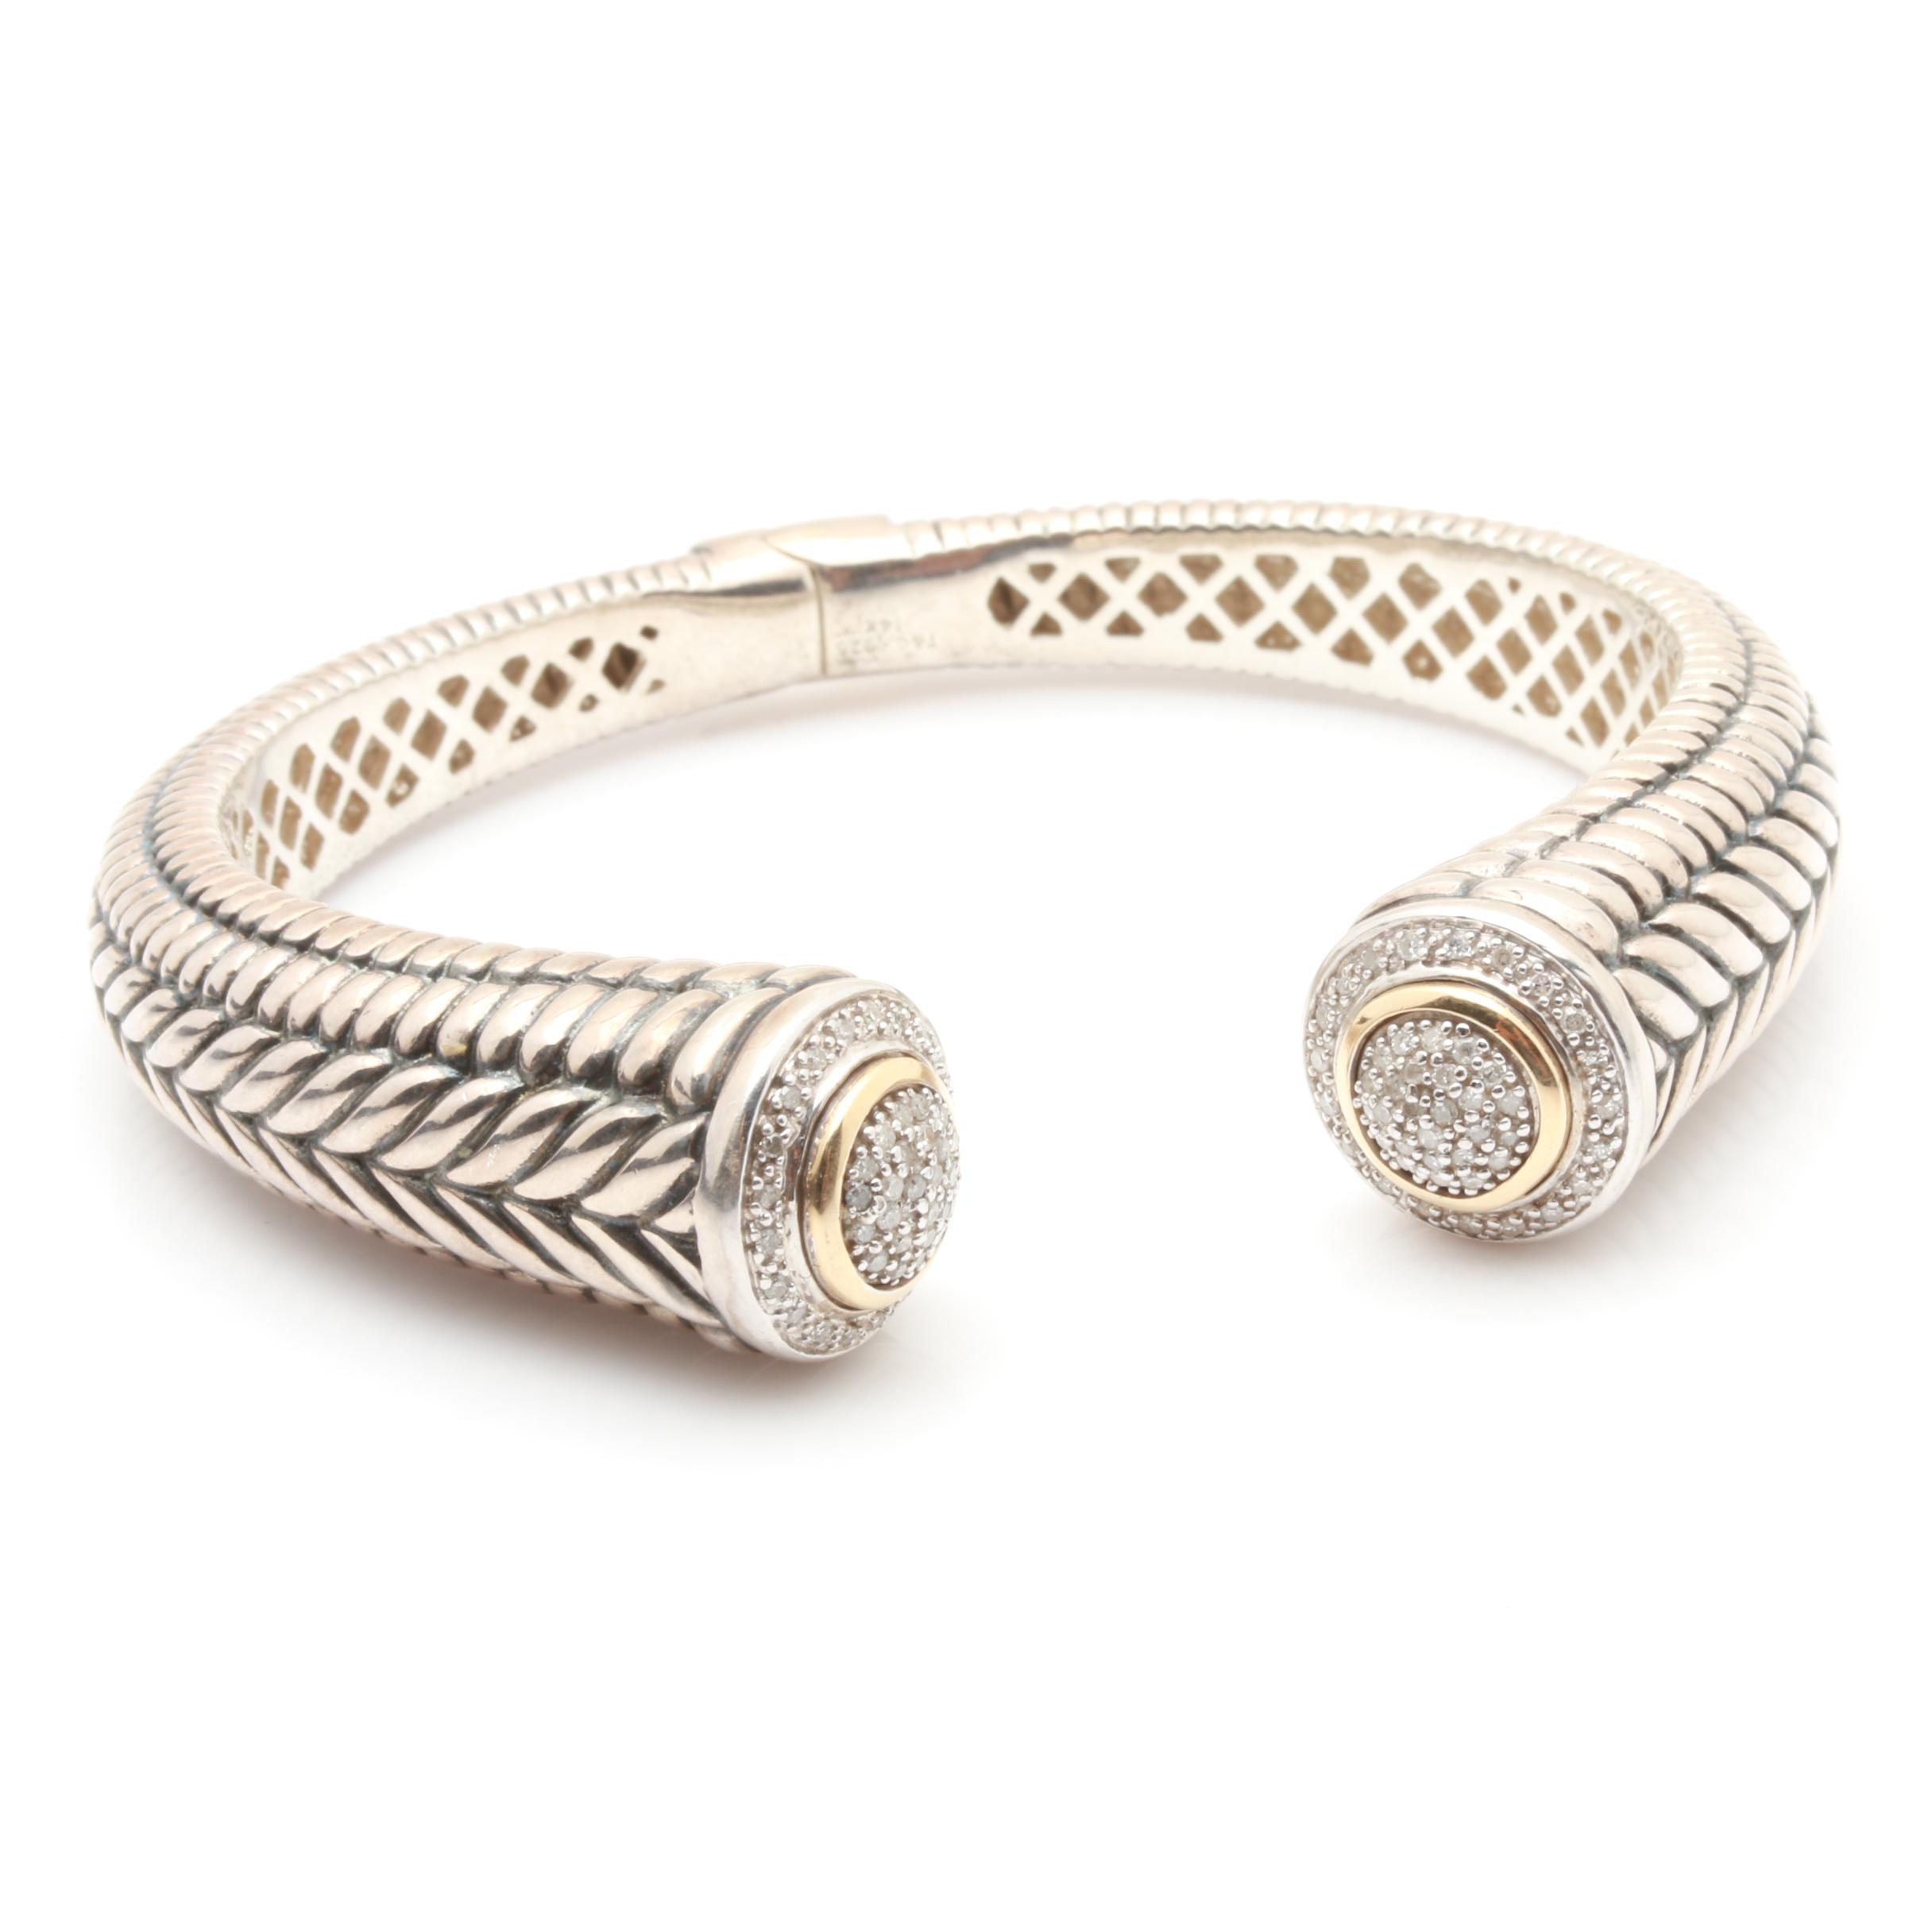 Sterling Silver Diamond Hinged Cuff Bracelet With 14K Yellow Gold Accents